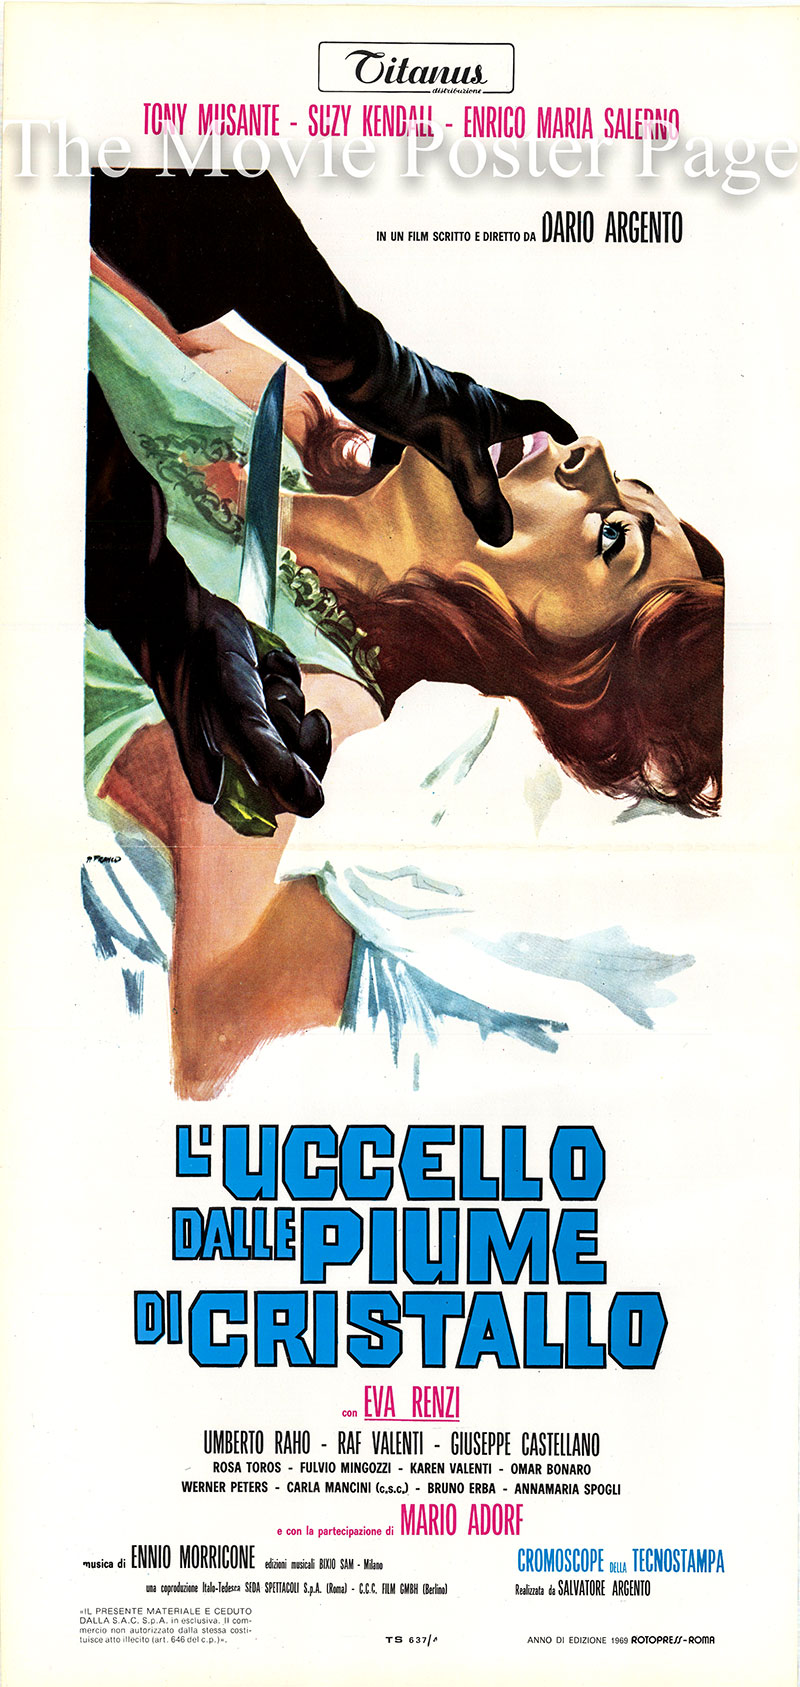 Pictured is an Italian locandina poster for the 1970 Dario Argento film The Bird with the Crystal Plumage starring Tony Musante as Sam Dalmas.